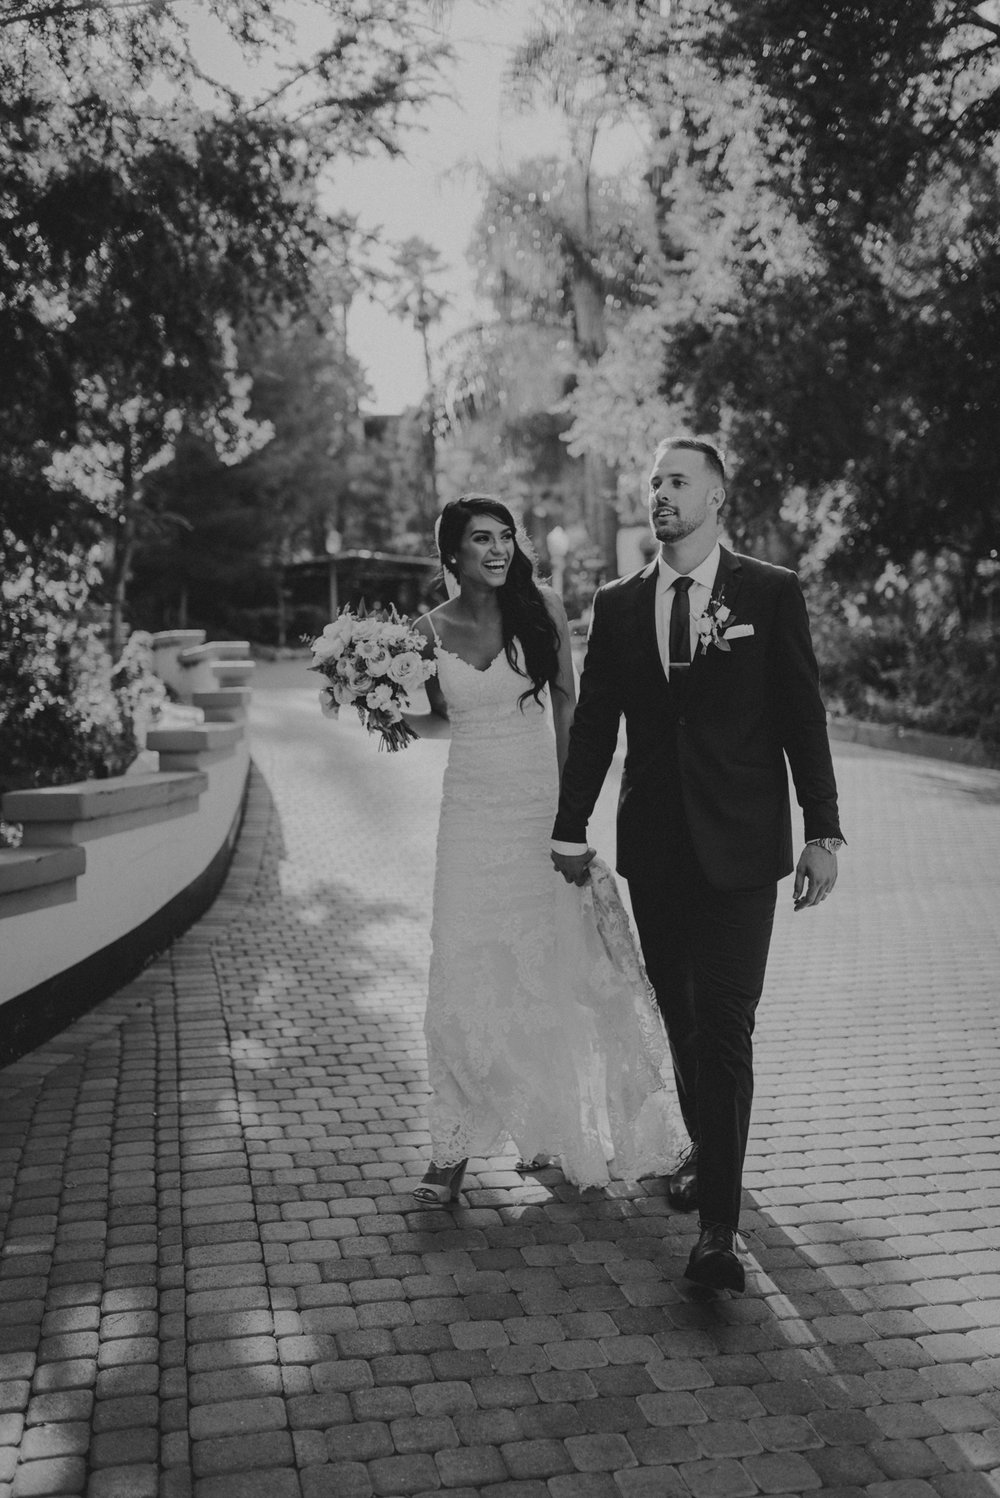 Isaiah + Taylor Photography - Rancho Las Lomas Wedding, Los Angeles Wedding Photographer-124.jpg